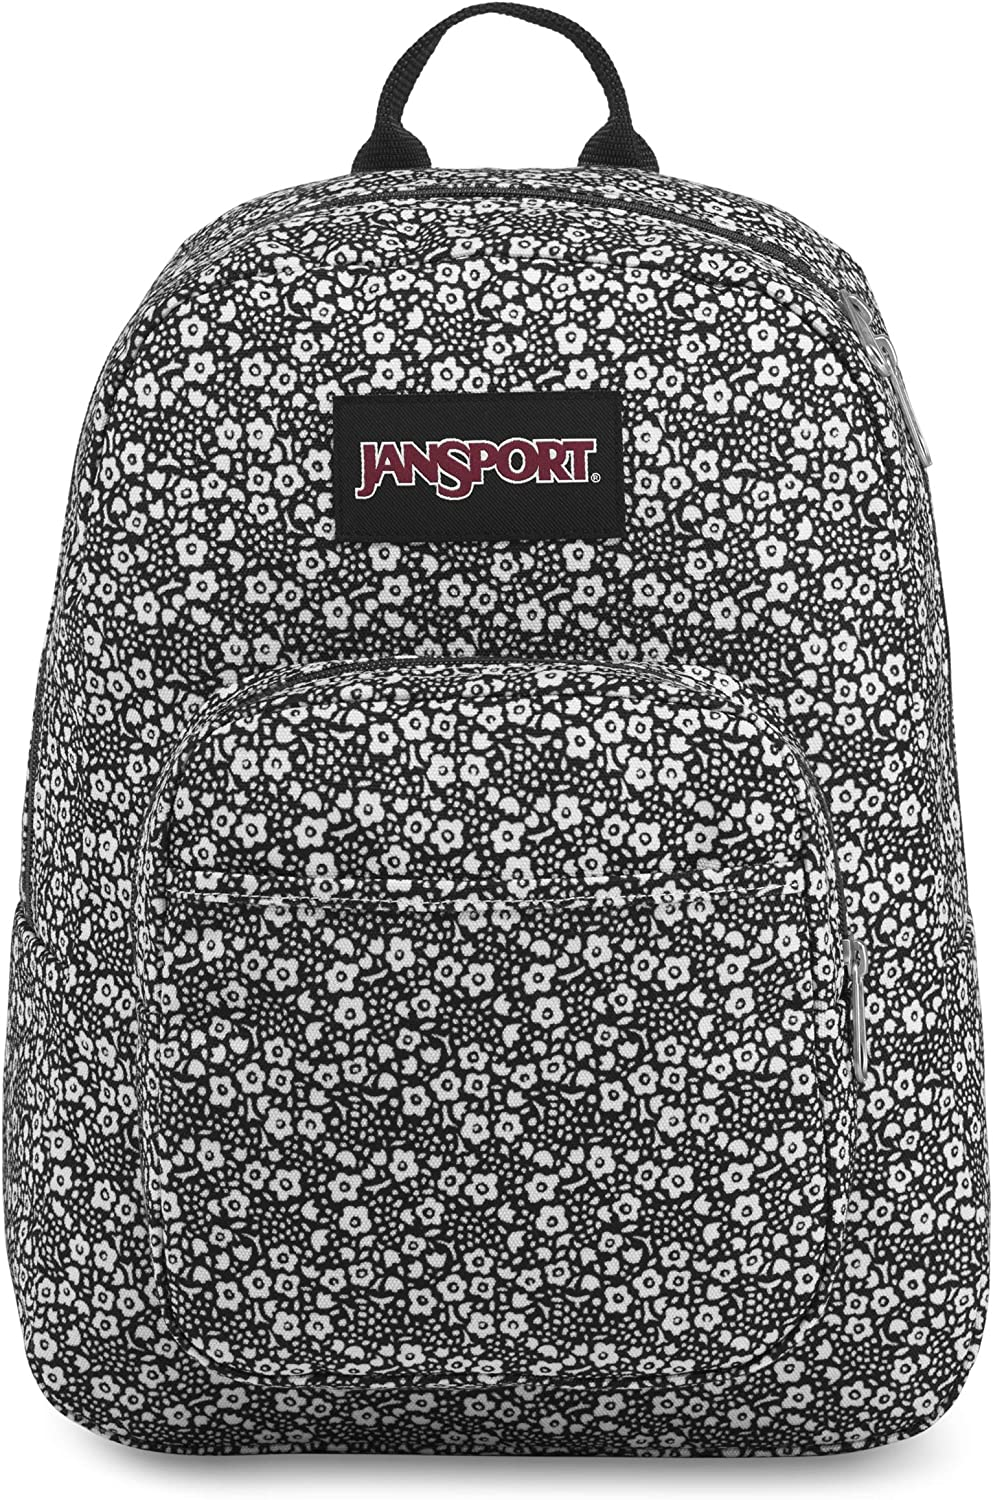 Embroidered Sunflowers JanSport Full Pint FX Backpack Lightweight Daypack